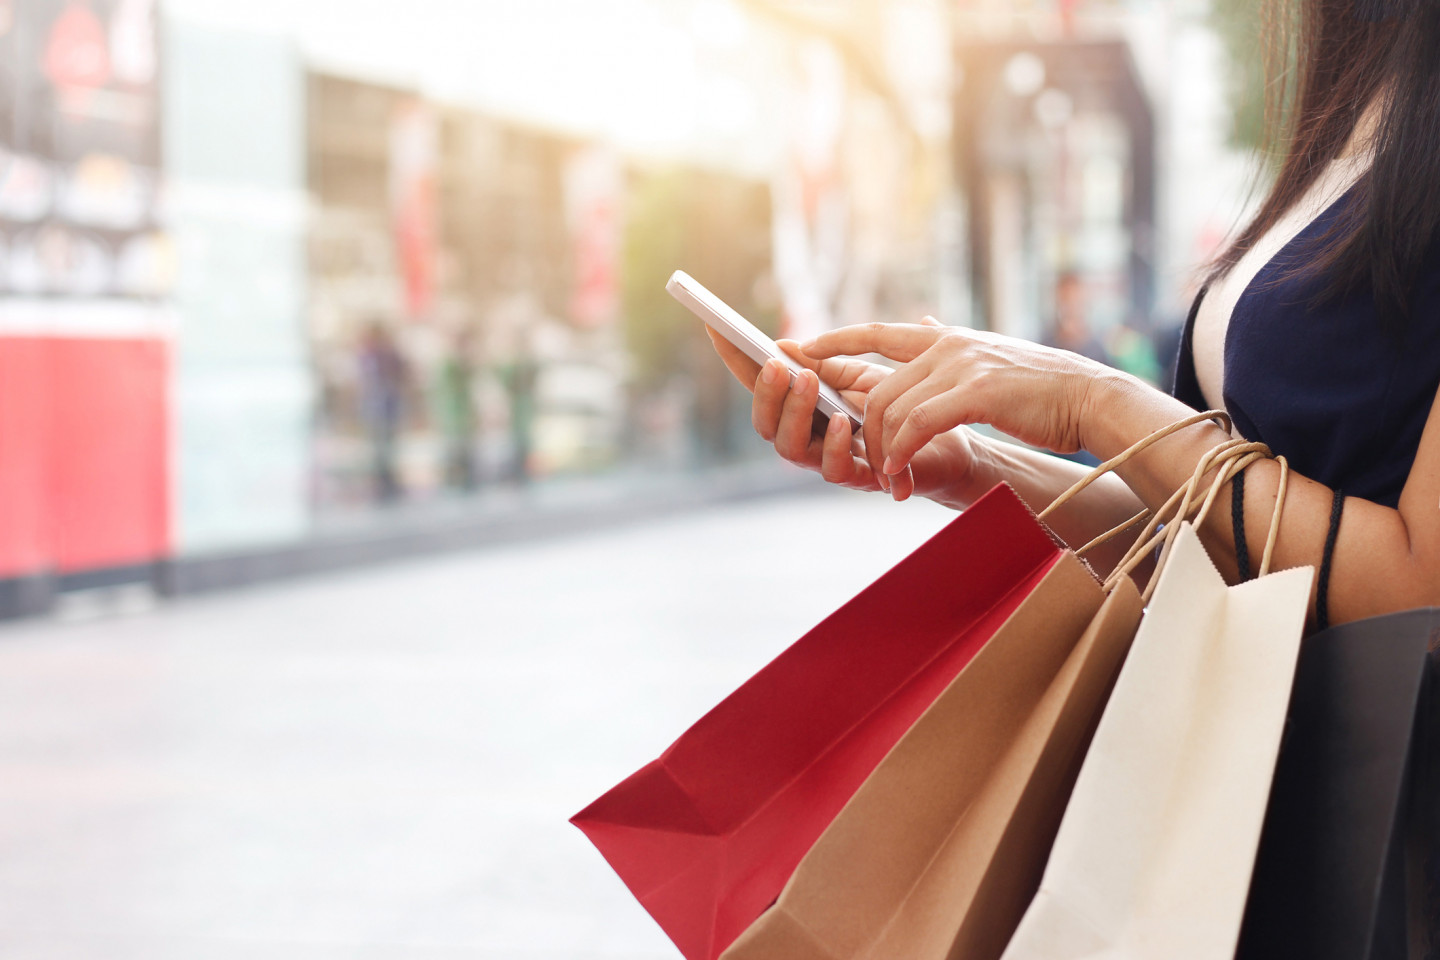 Beacon in Retail: The New Shopping Experience